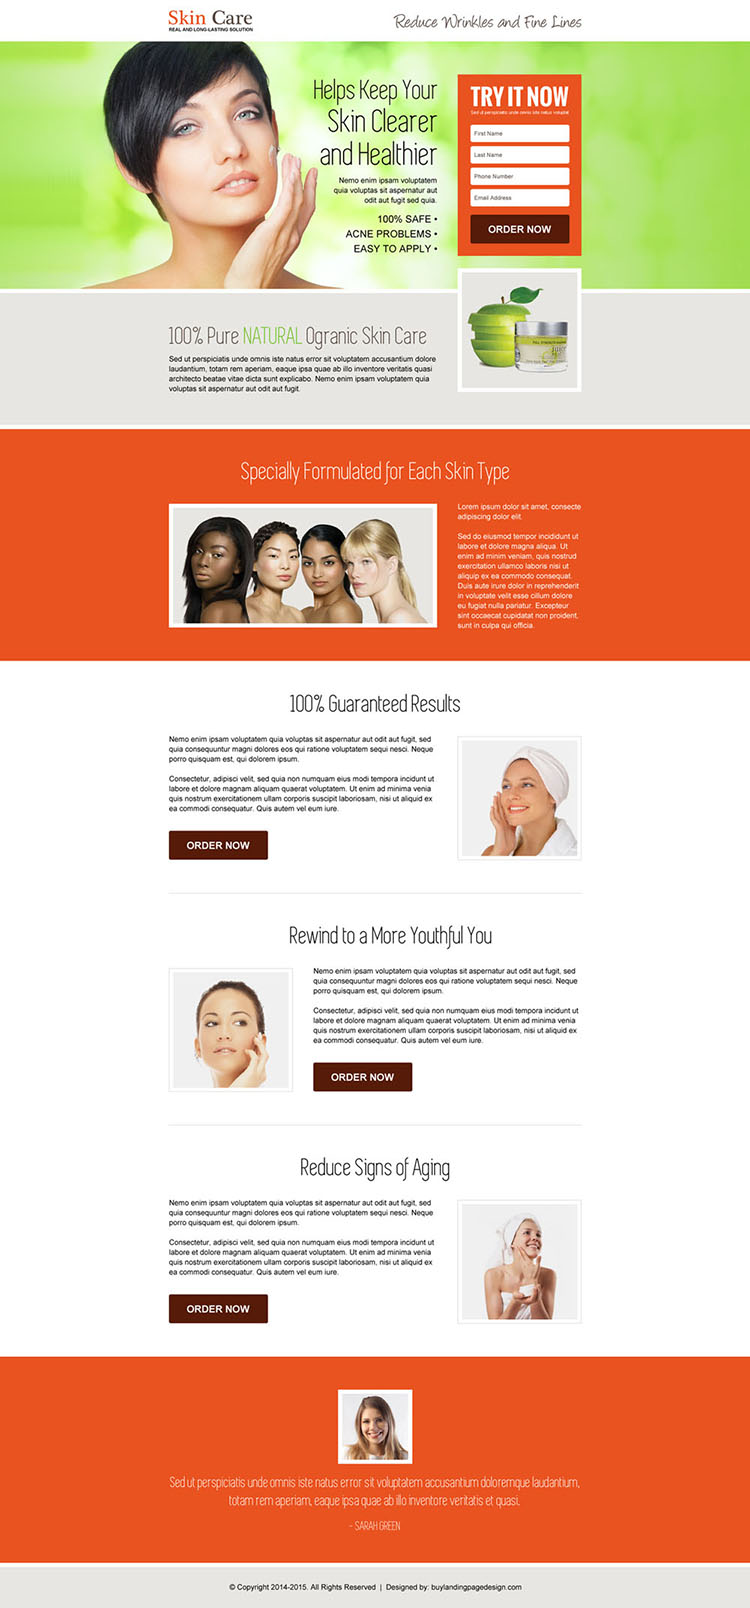 youthful glowing skin care lead capture landing page design